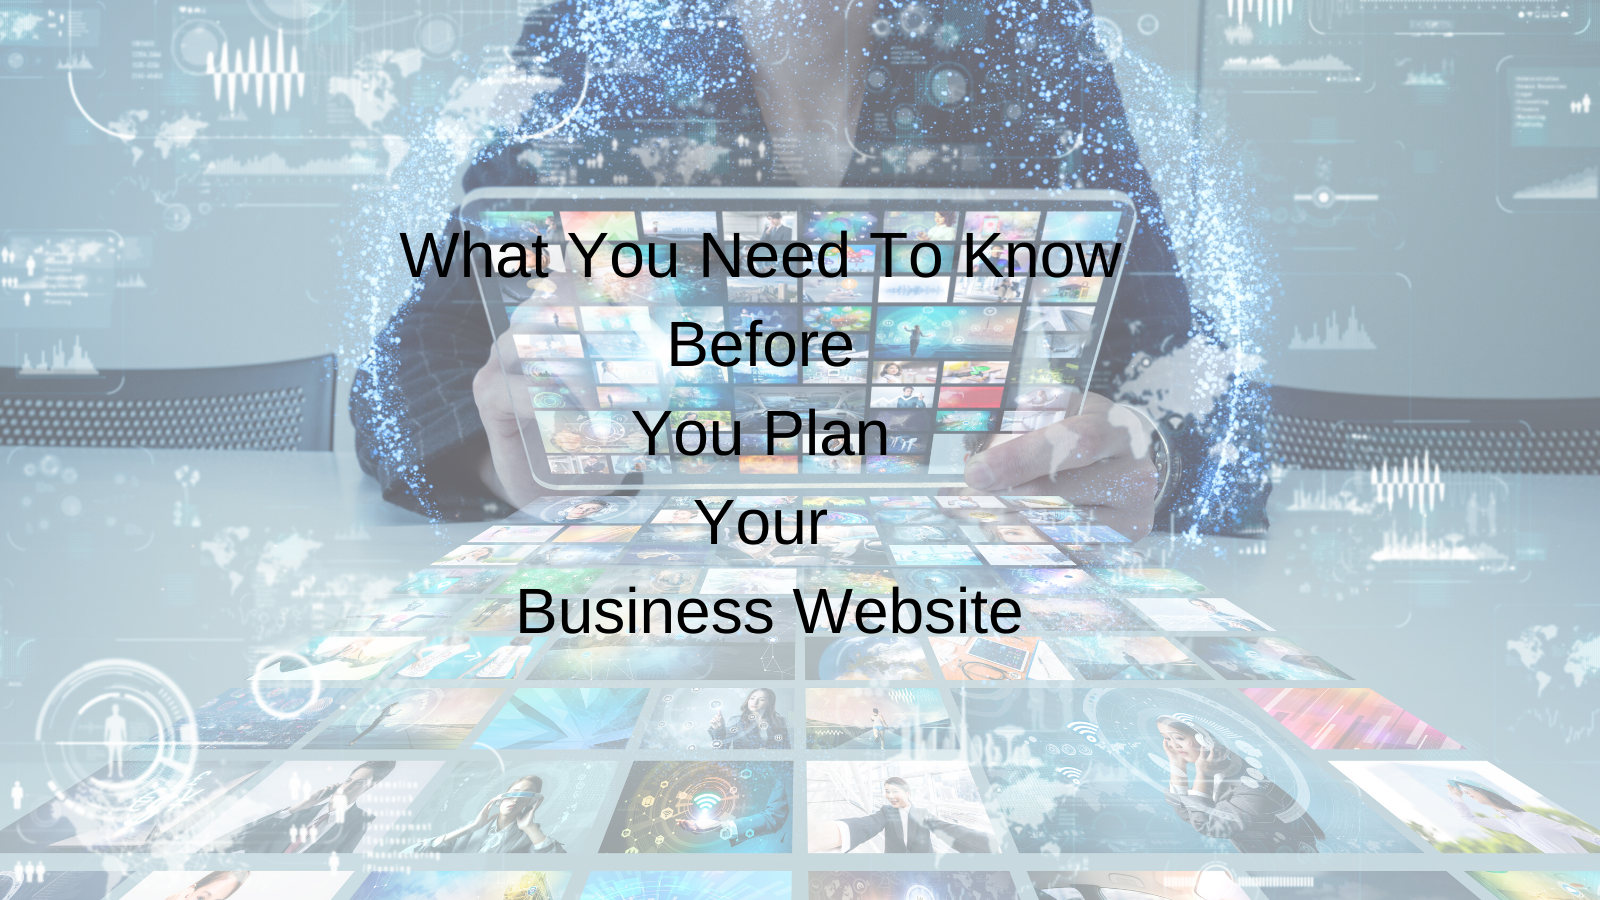 What You Need To Know Before You Plan Your Business Website